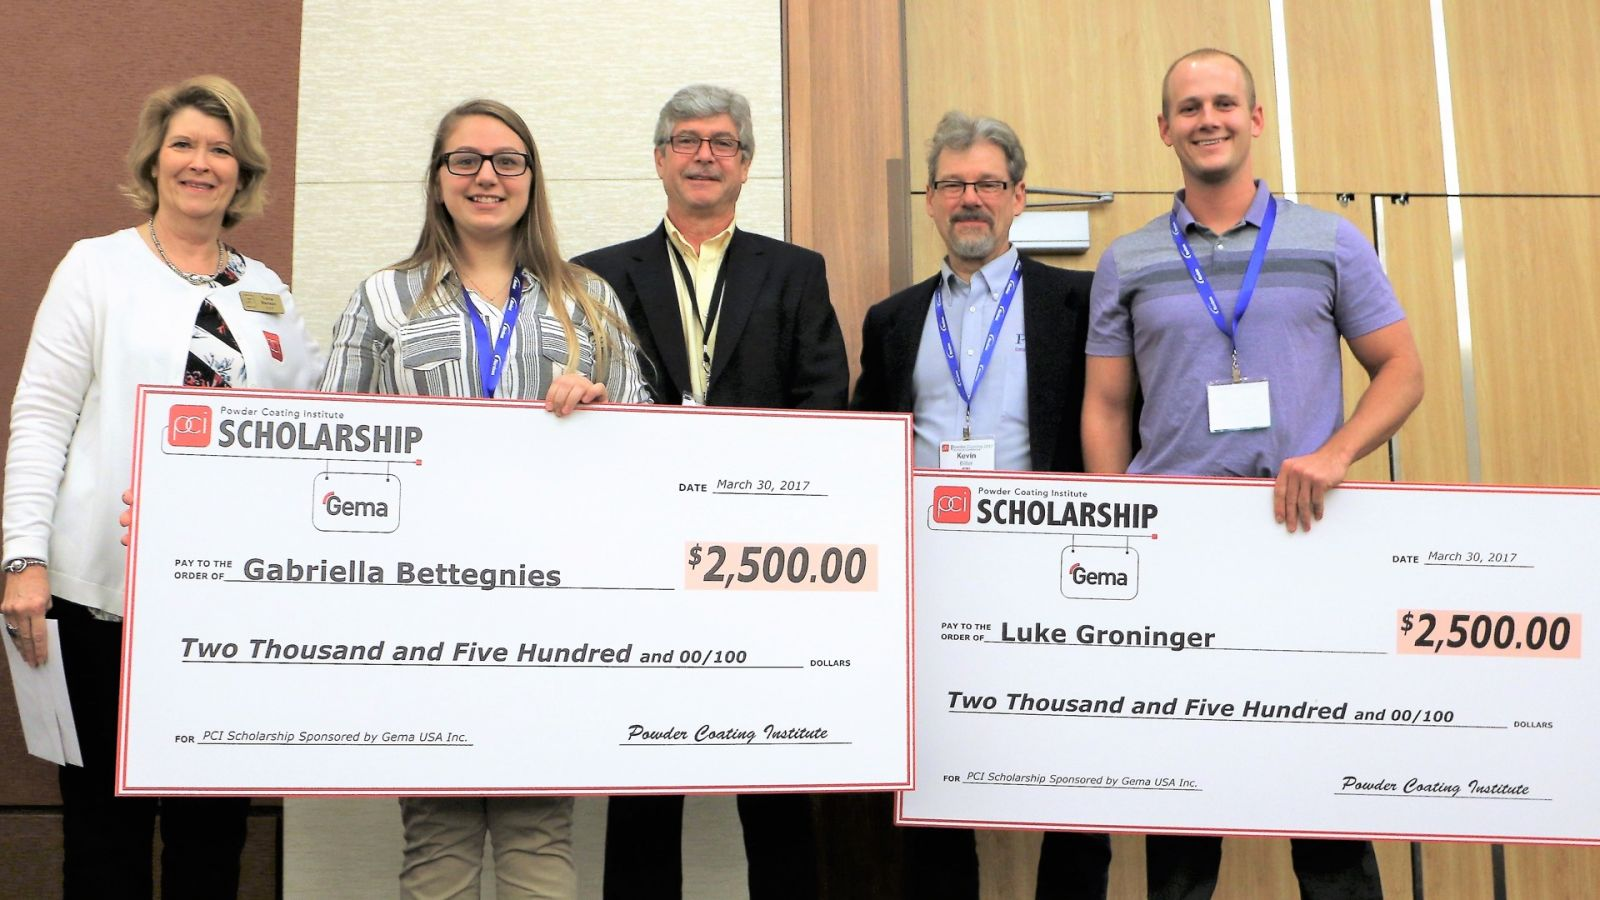 Trena Benson, executive director of PCI, Chris Merritt, and Kevin Biller, chair of PCI Future of Technology subcommittee, present the PCI/Gema scholarship awards to Gabriella Bettegnies and Luke Groninger.